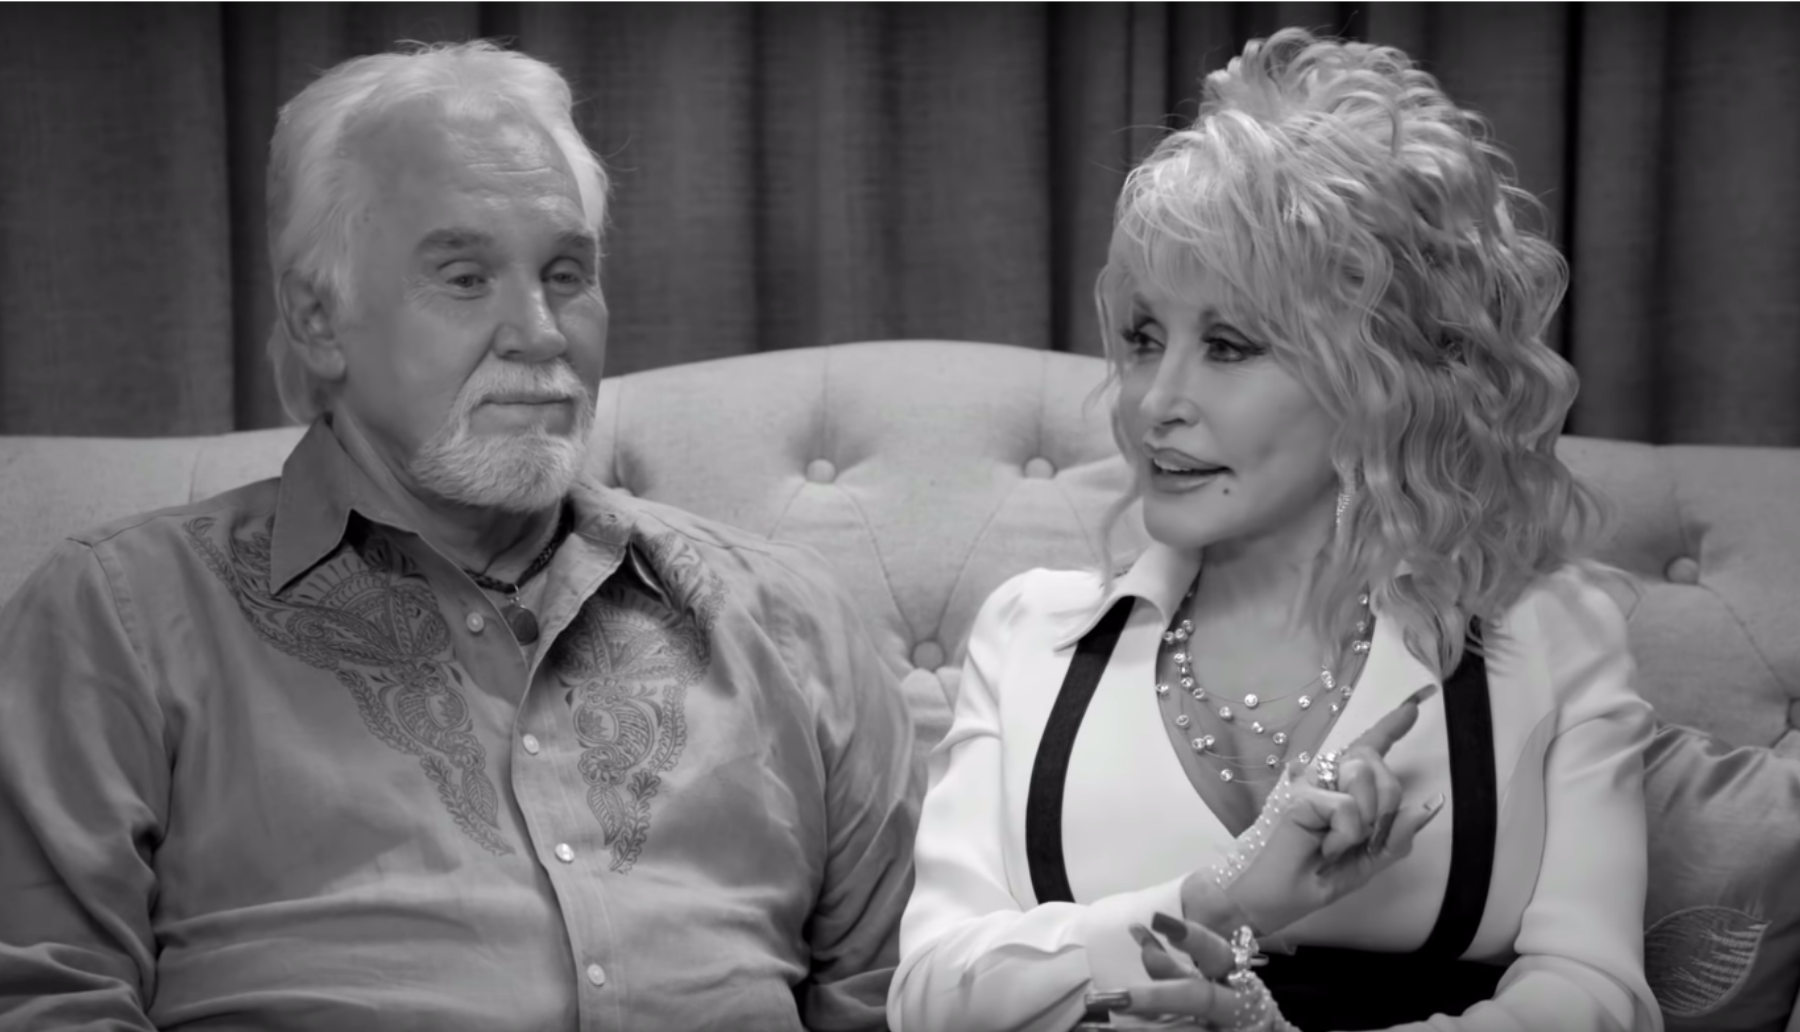 Kenny Rogers and Dolly Parton in black and white seated on a couch